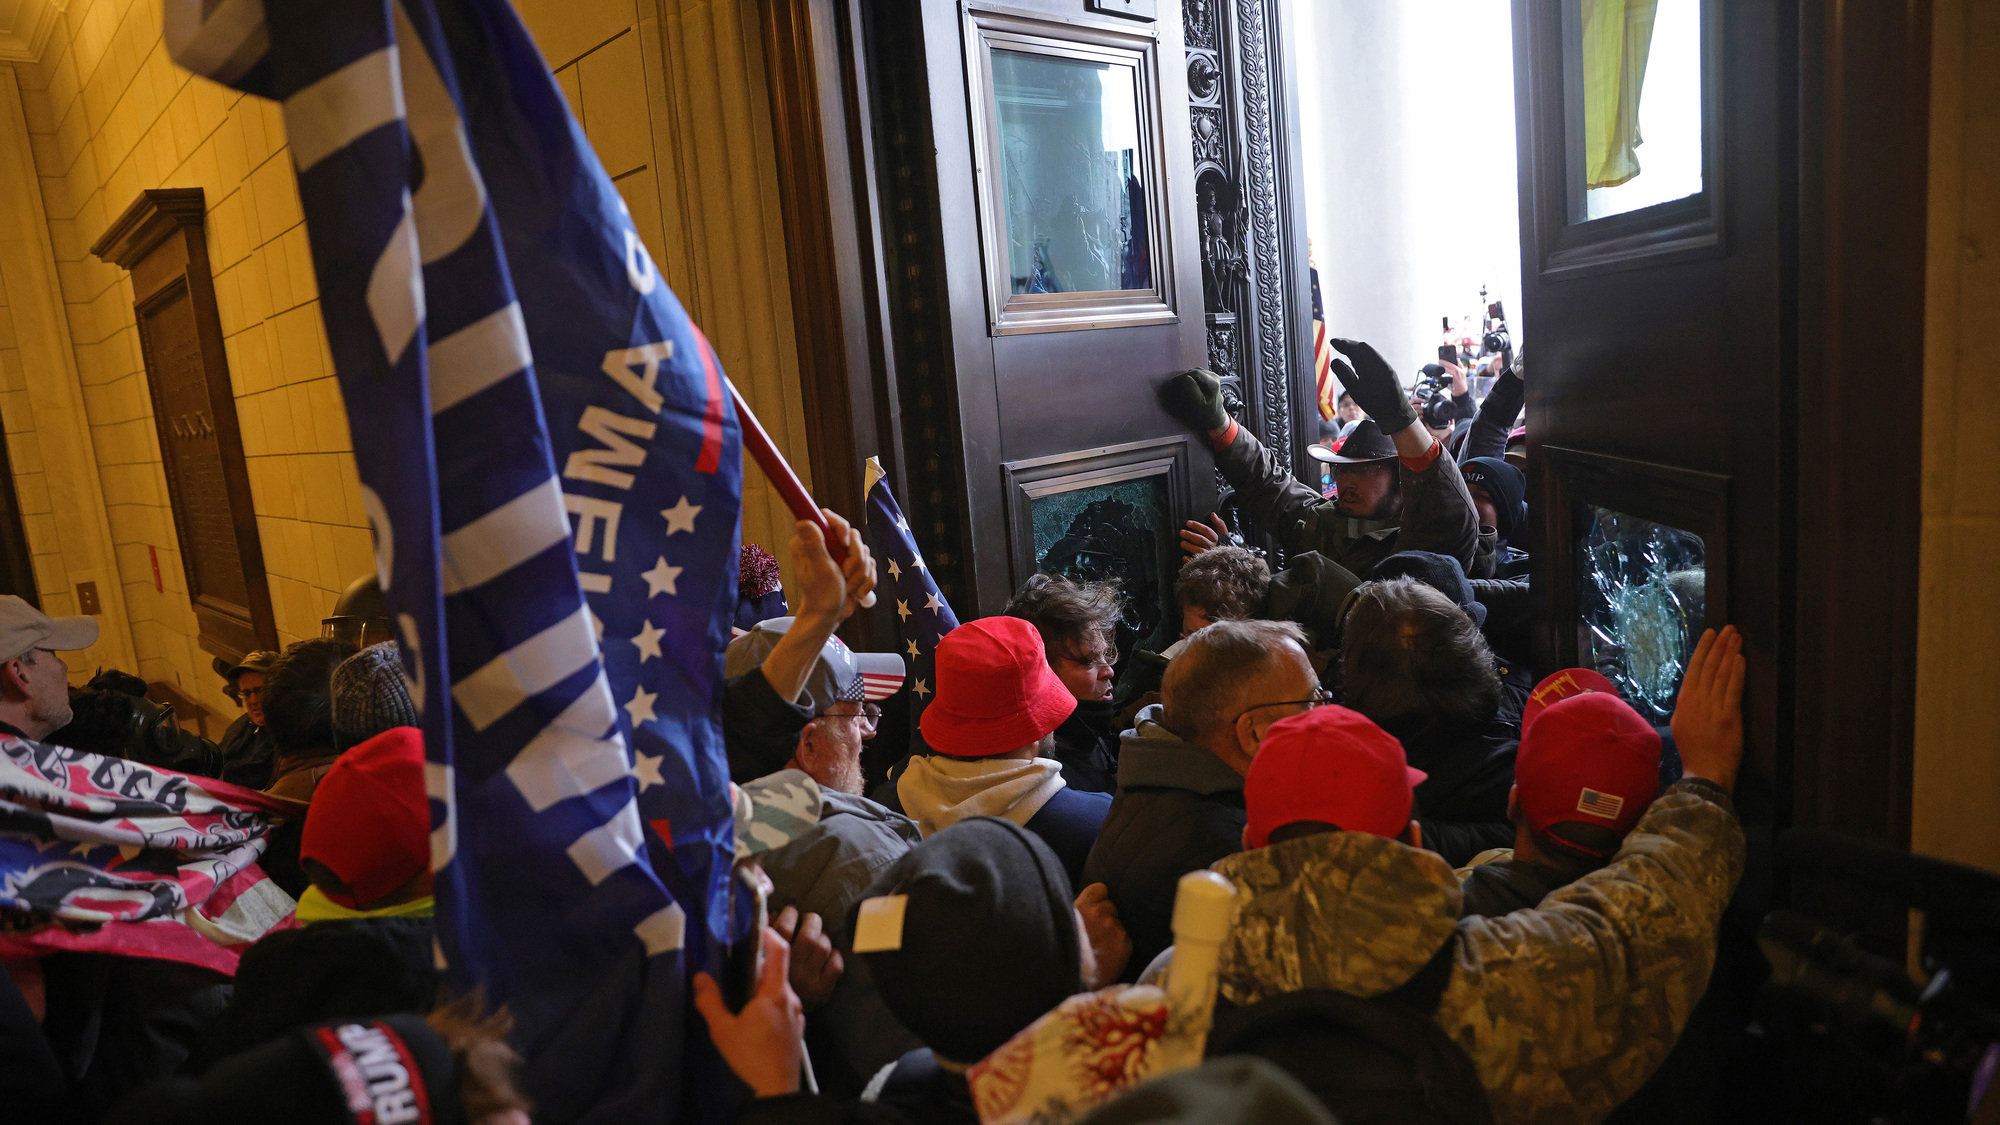 Insurrectionists broke into the U.S. Capitol on Jan. 6 in Washington, DC.